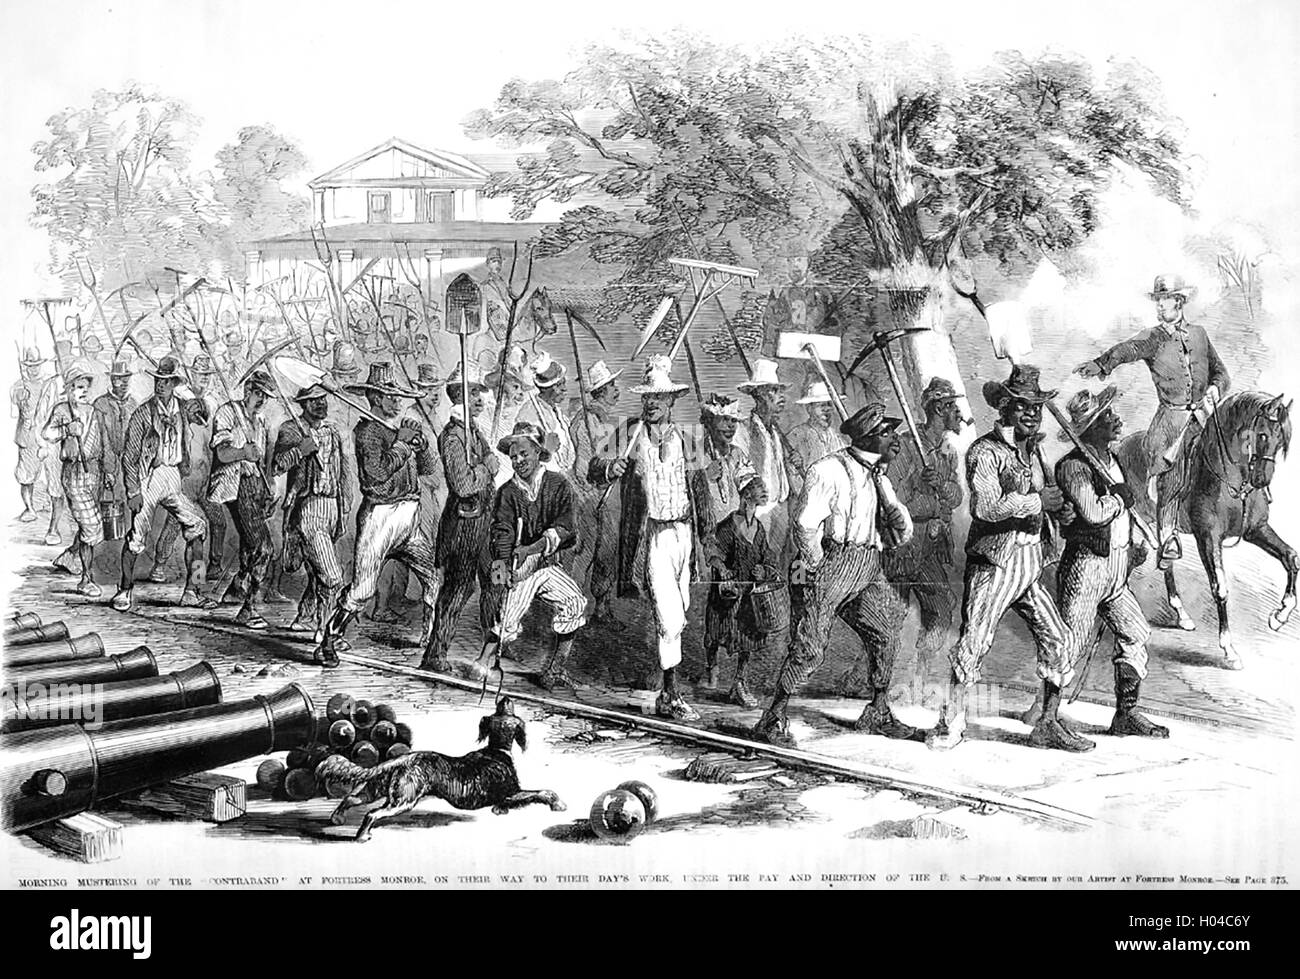 'MORNING MUSTERING OF THE CONTRABANDS' at Fort Monroe, Hampton, Virginia  from Frank Leslie's Illustrated, - Stock Image